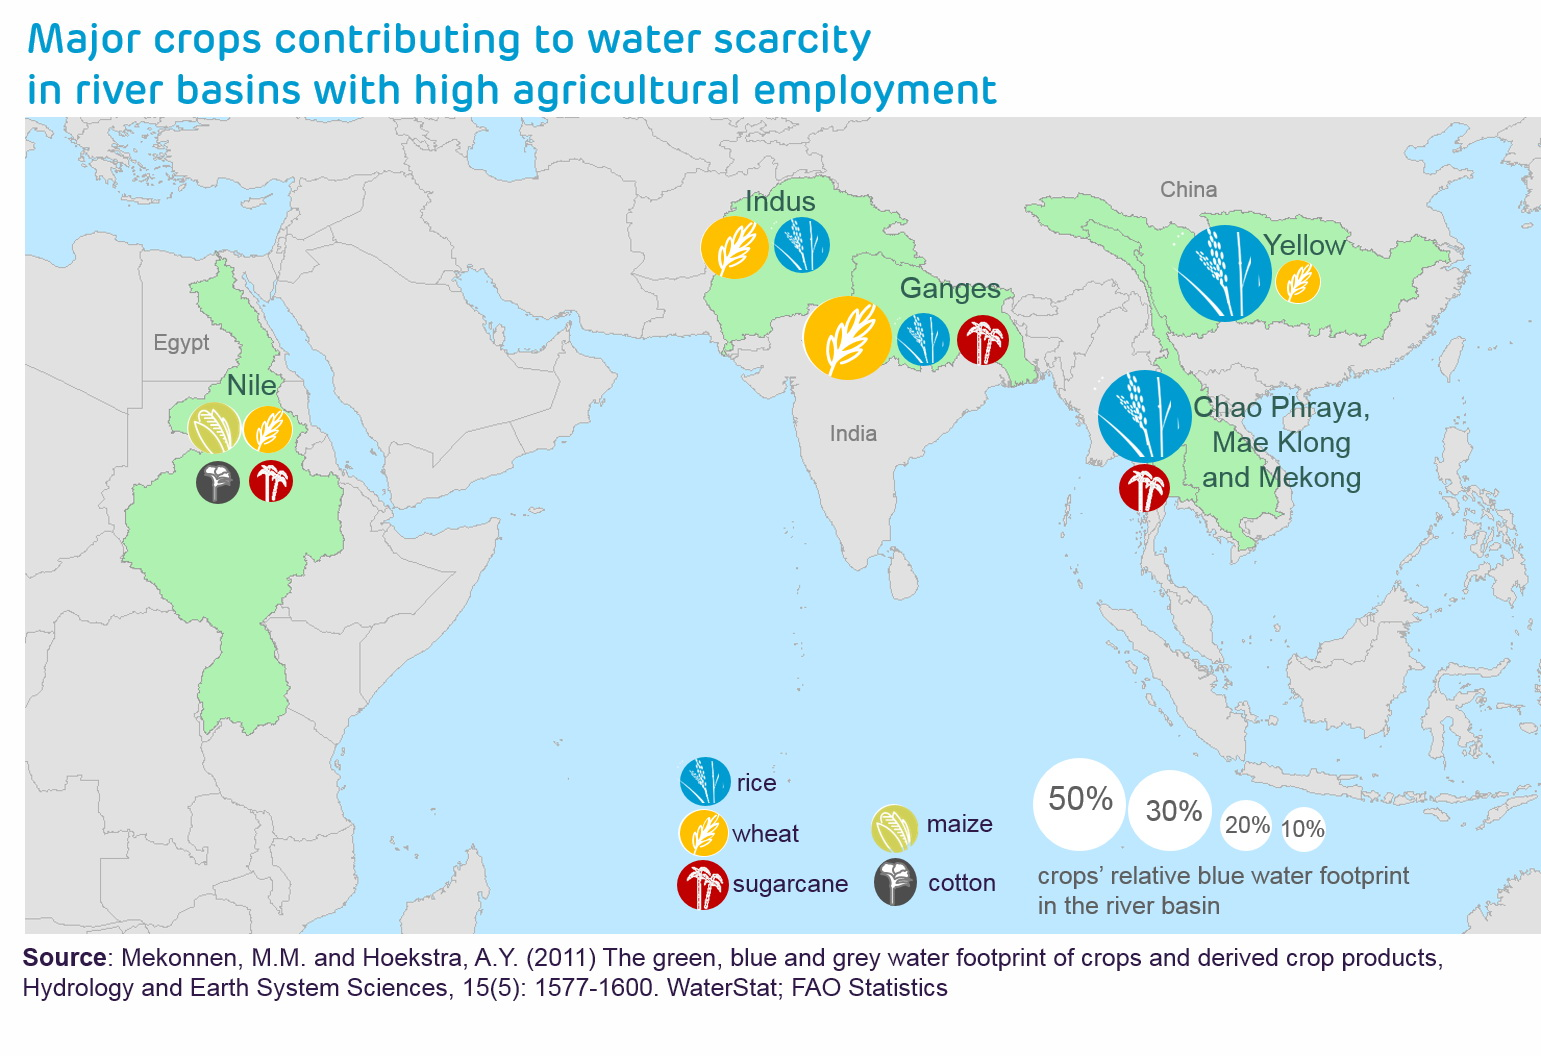 Major crops contributing to water scarcity in river basins with high agricultural employment